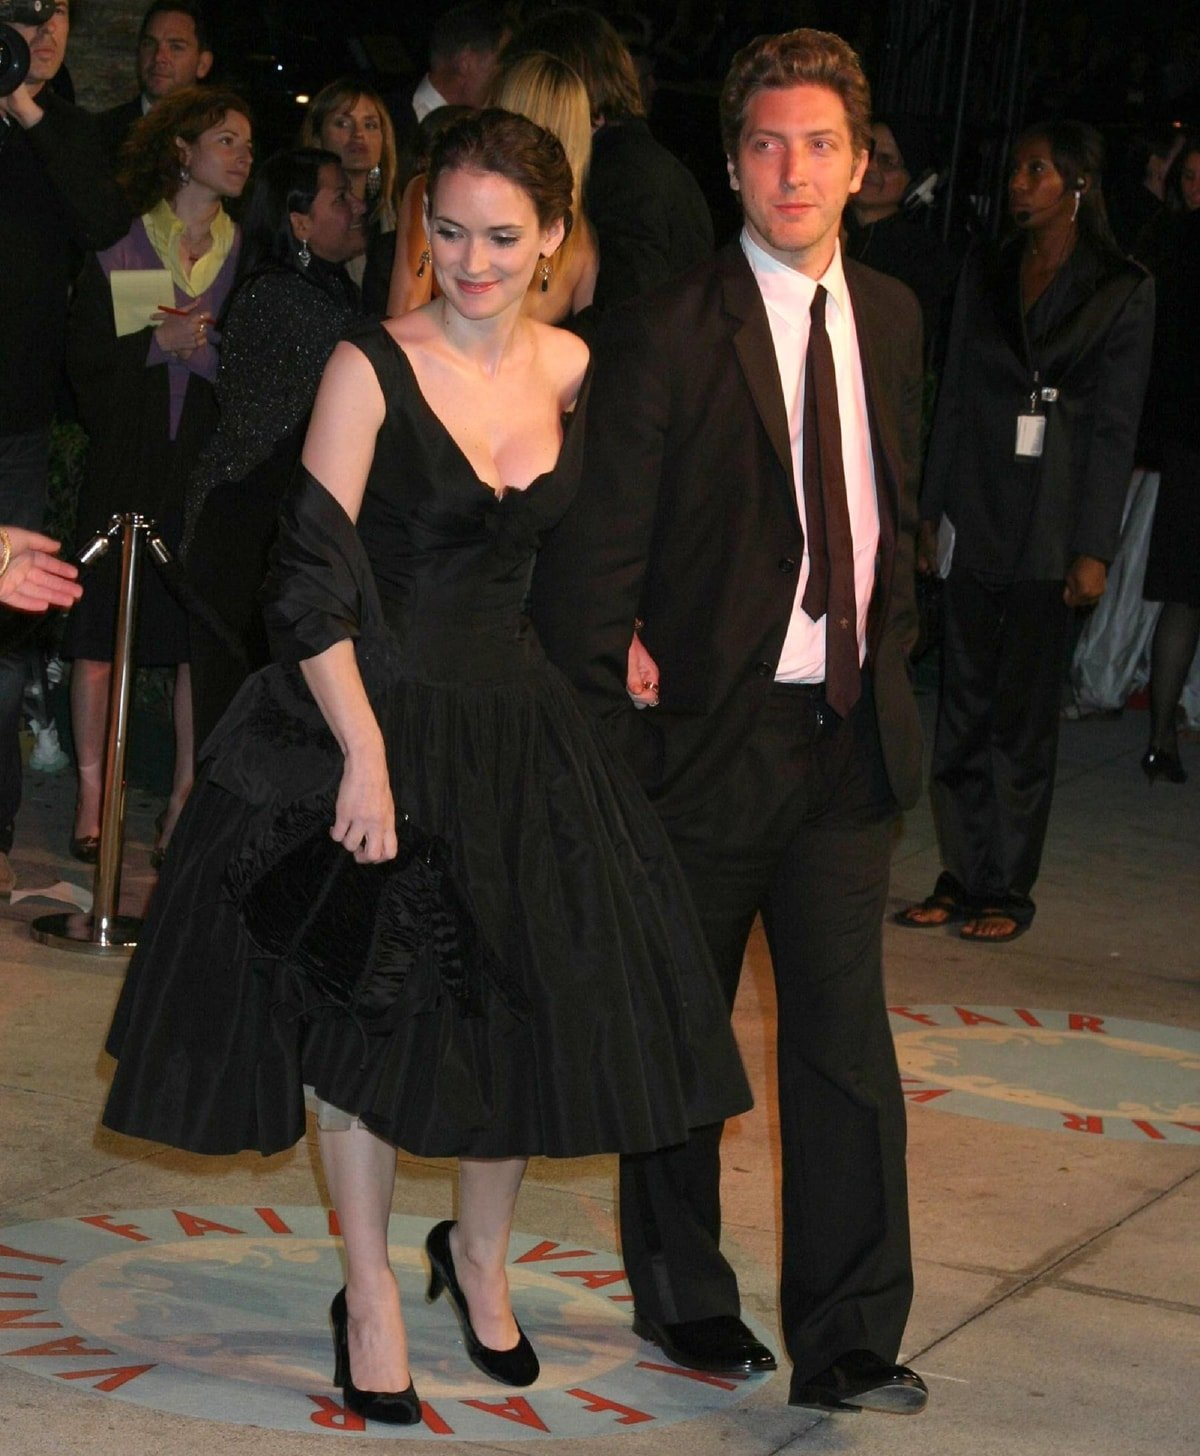 Academy Award-nominated American filmmaker Henry Alex-Rubin and Winona Ryder dated in 2006